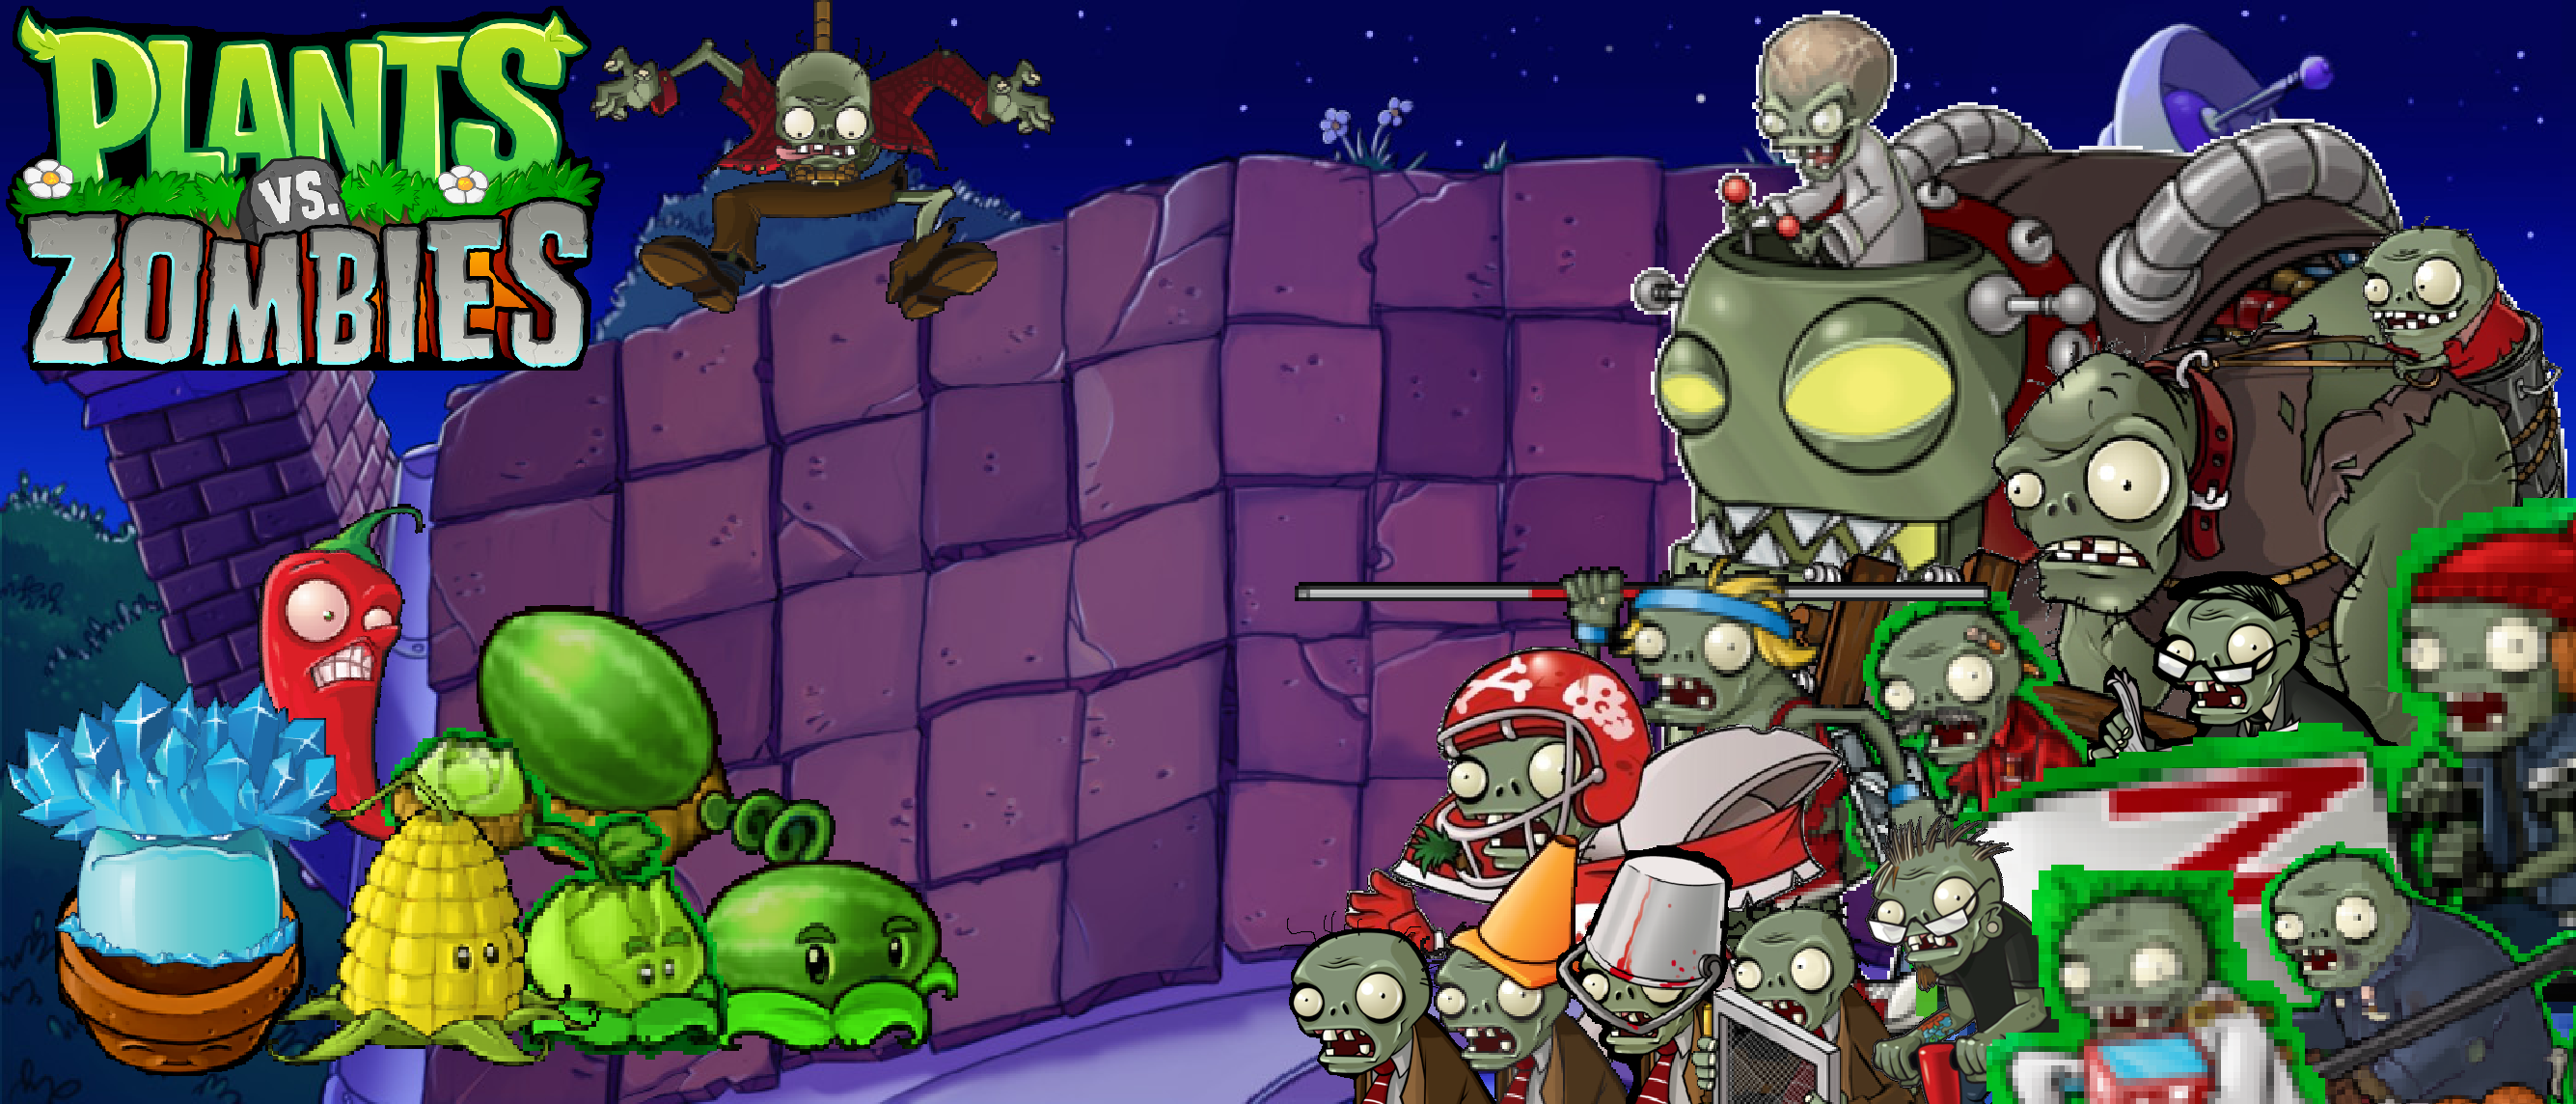 plants vs zombies dr. zomboss wallpaperphotographerferd on